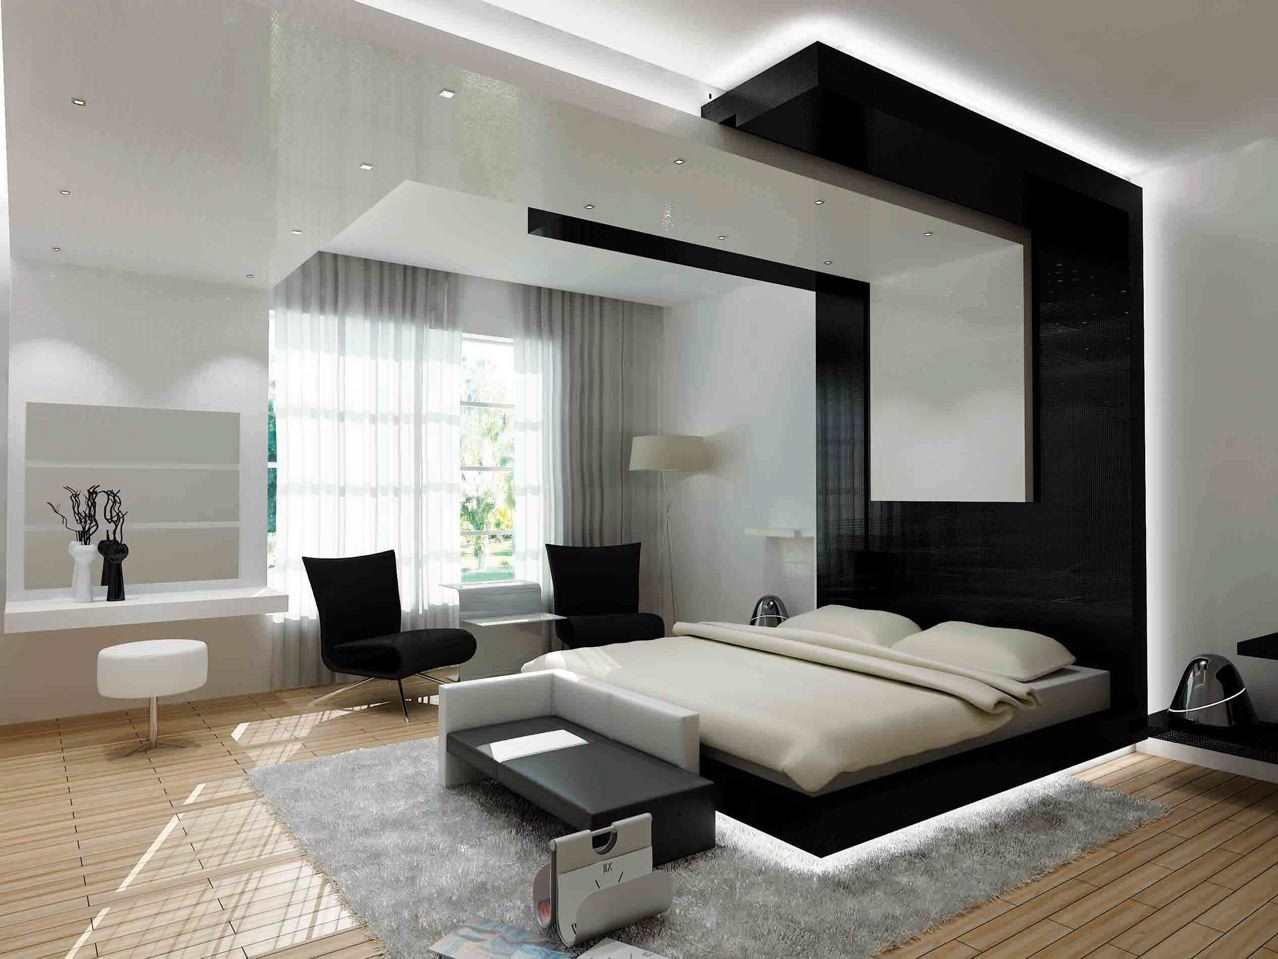 30 Contemporary Bedroom Design For Your Home - The WoW Style on Room Decore  id=77314